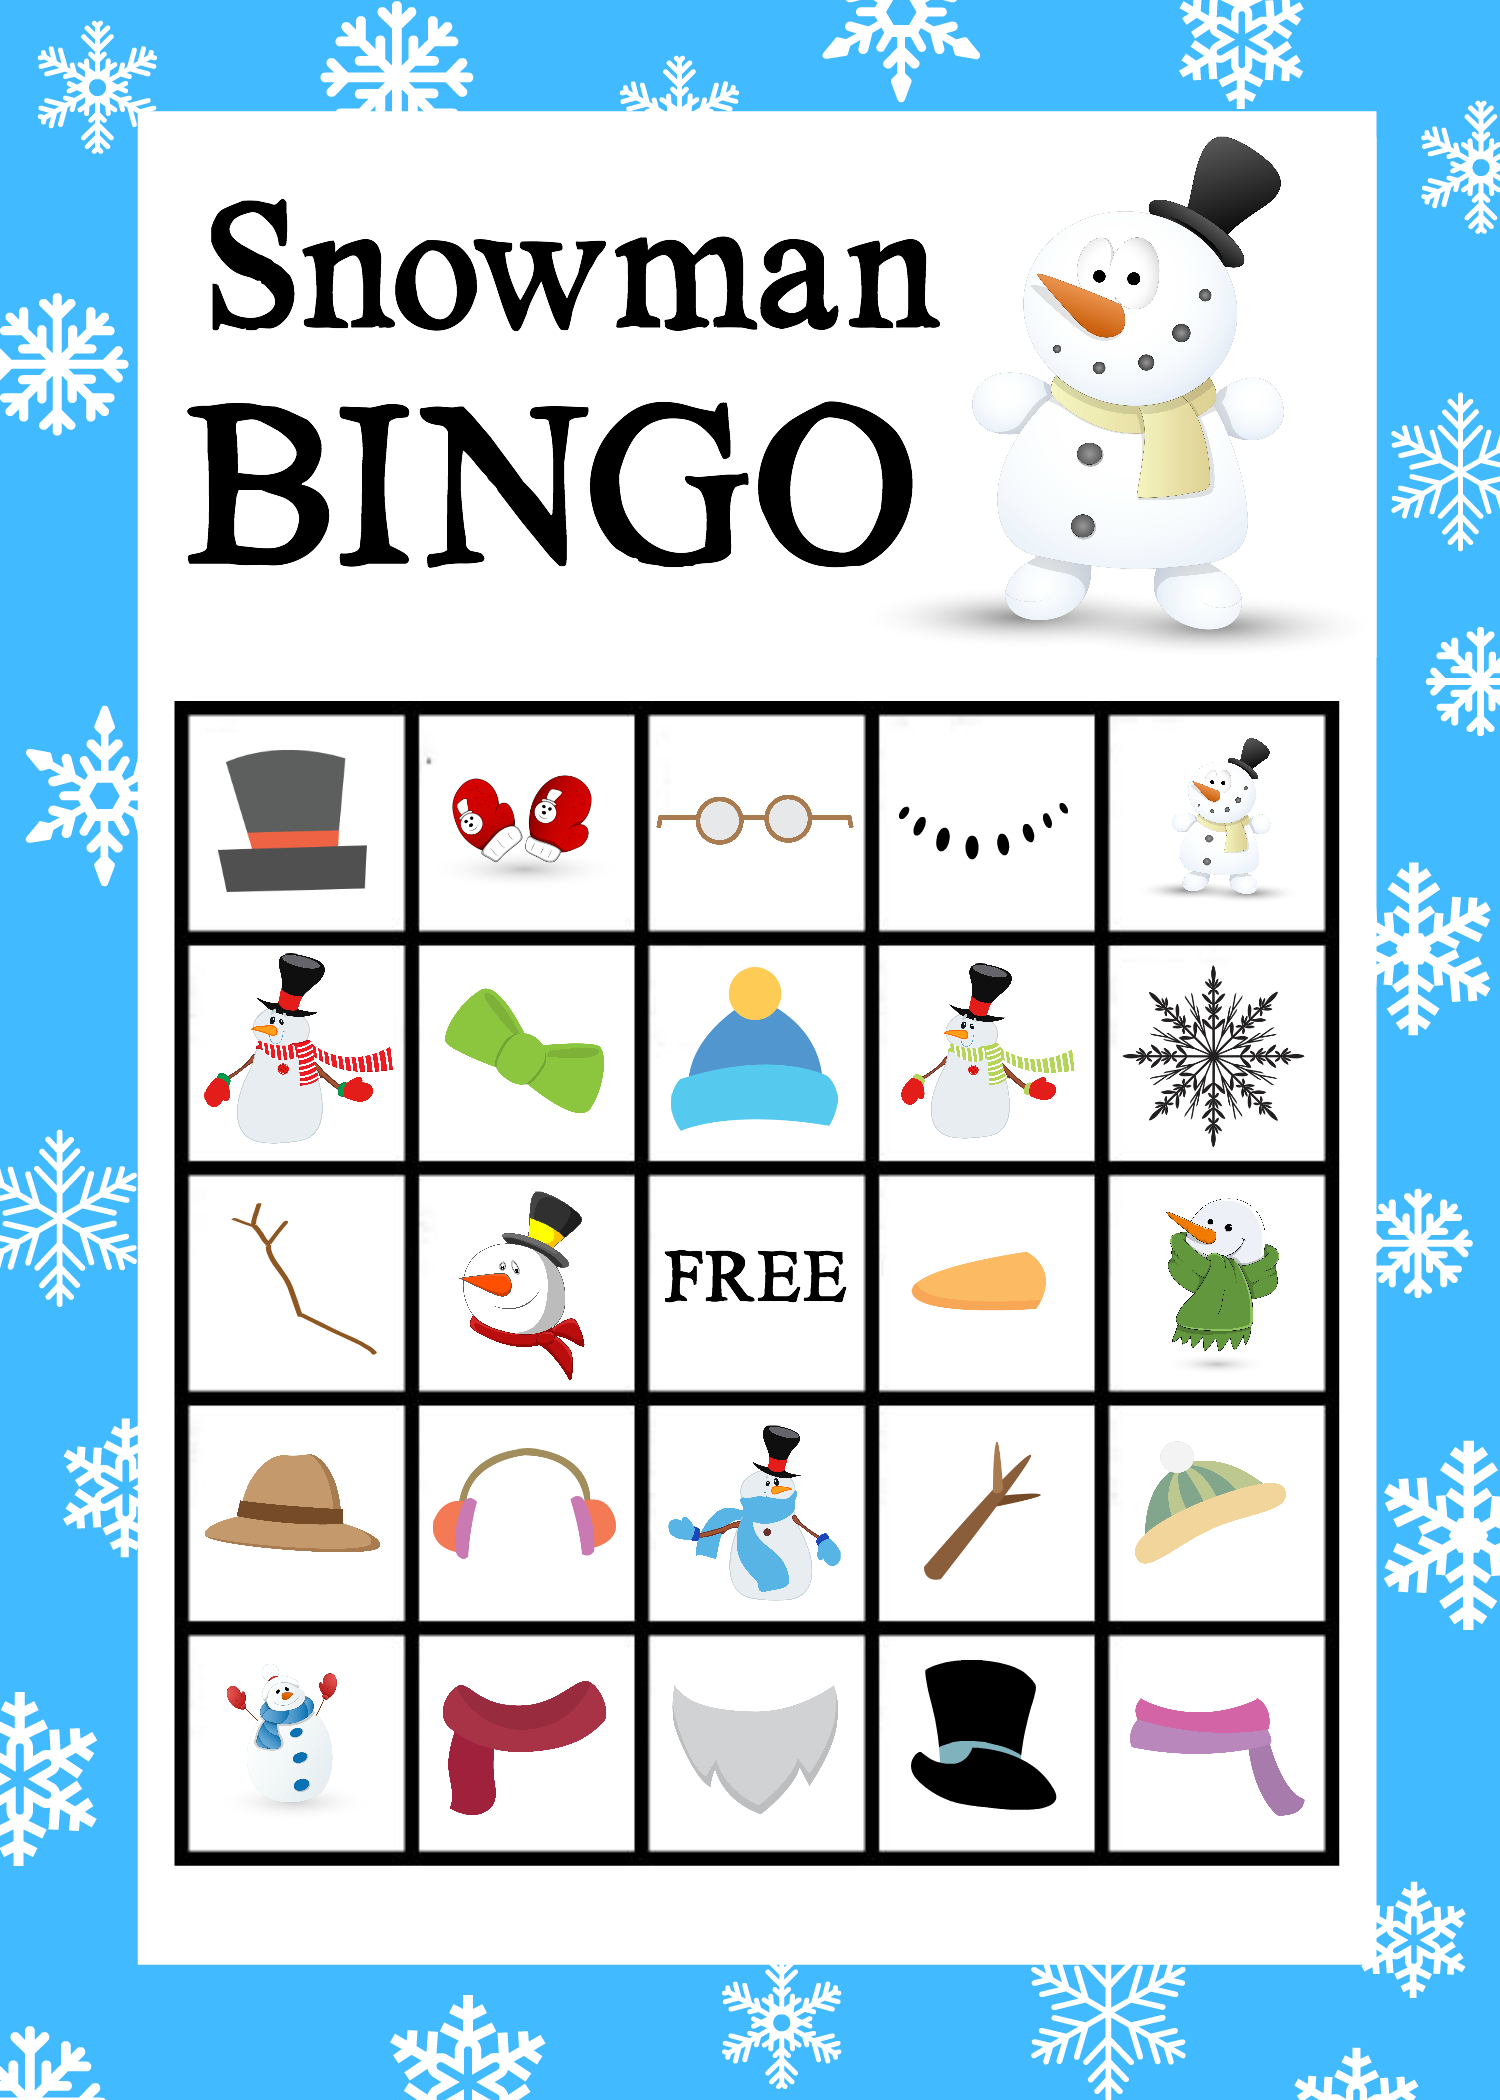 play bingo online for fun free